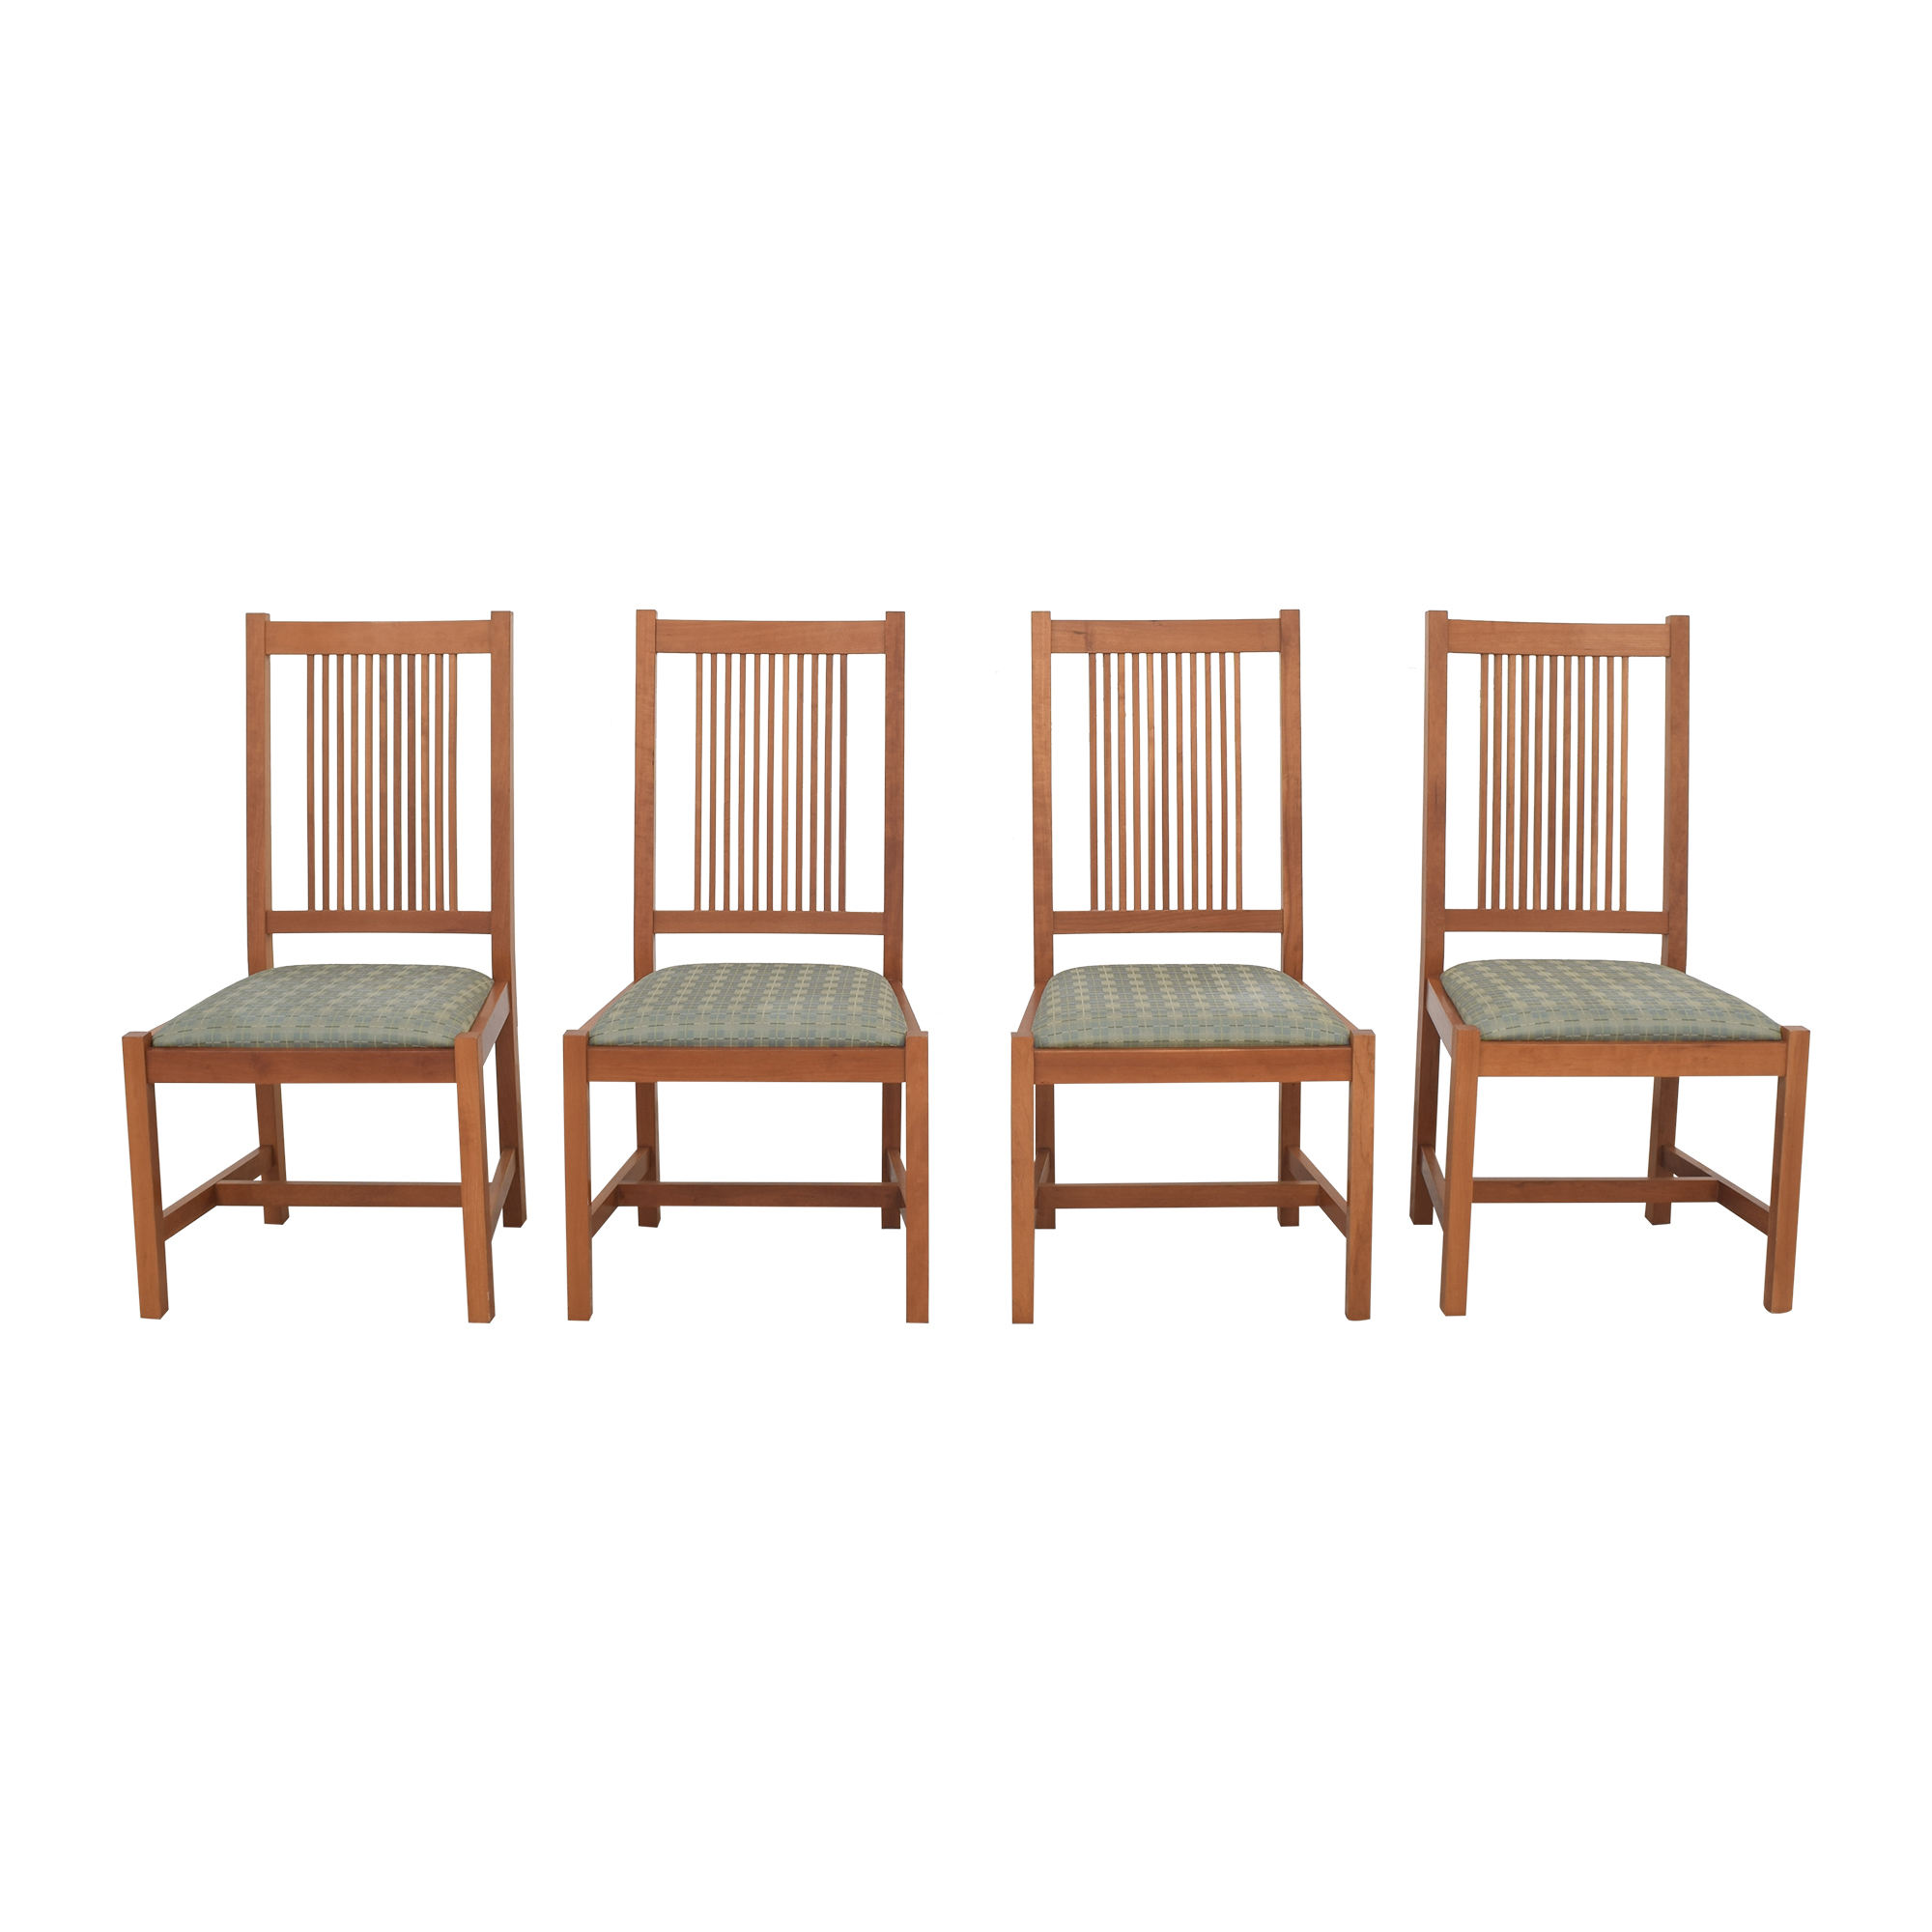 Scott Jordan Mission Style Dining Chairs / Chairs